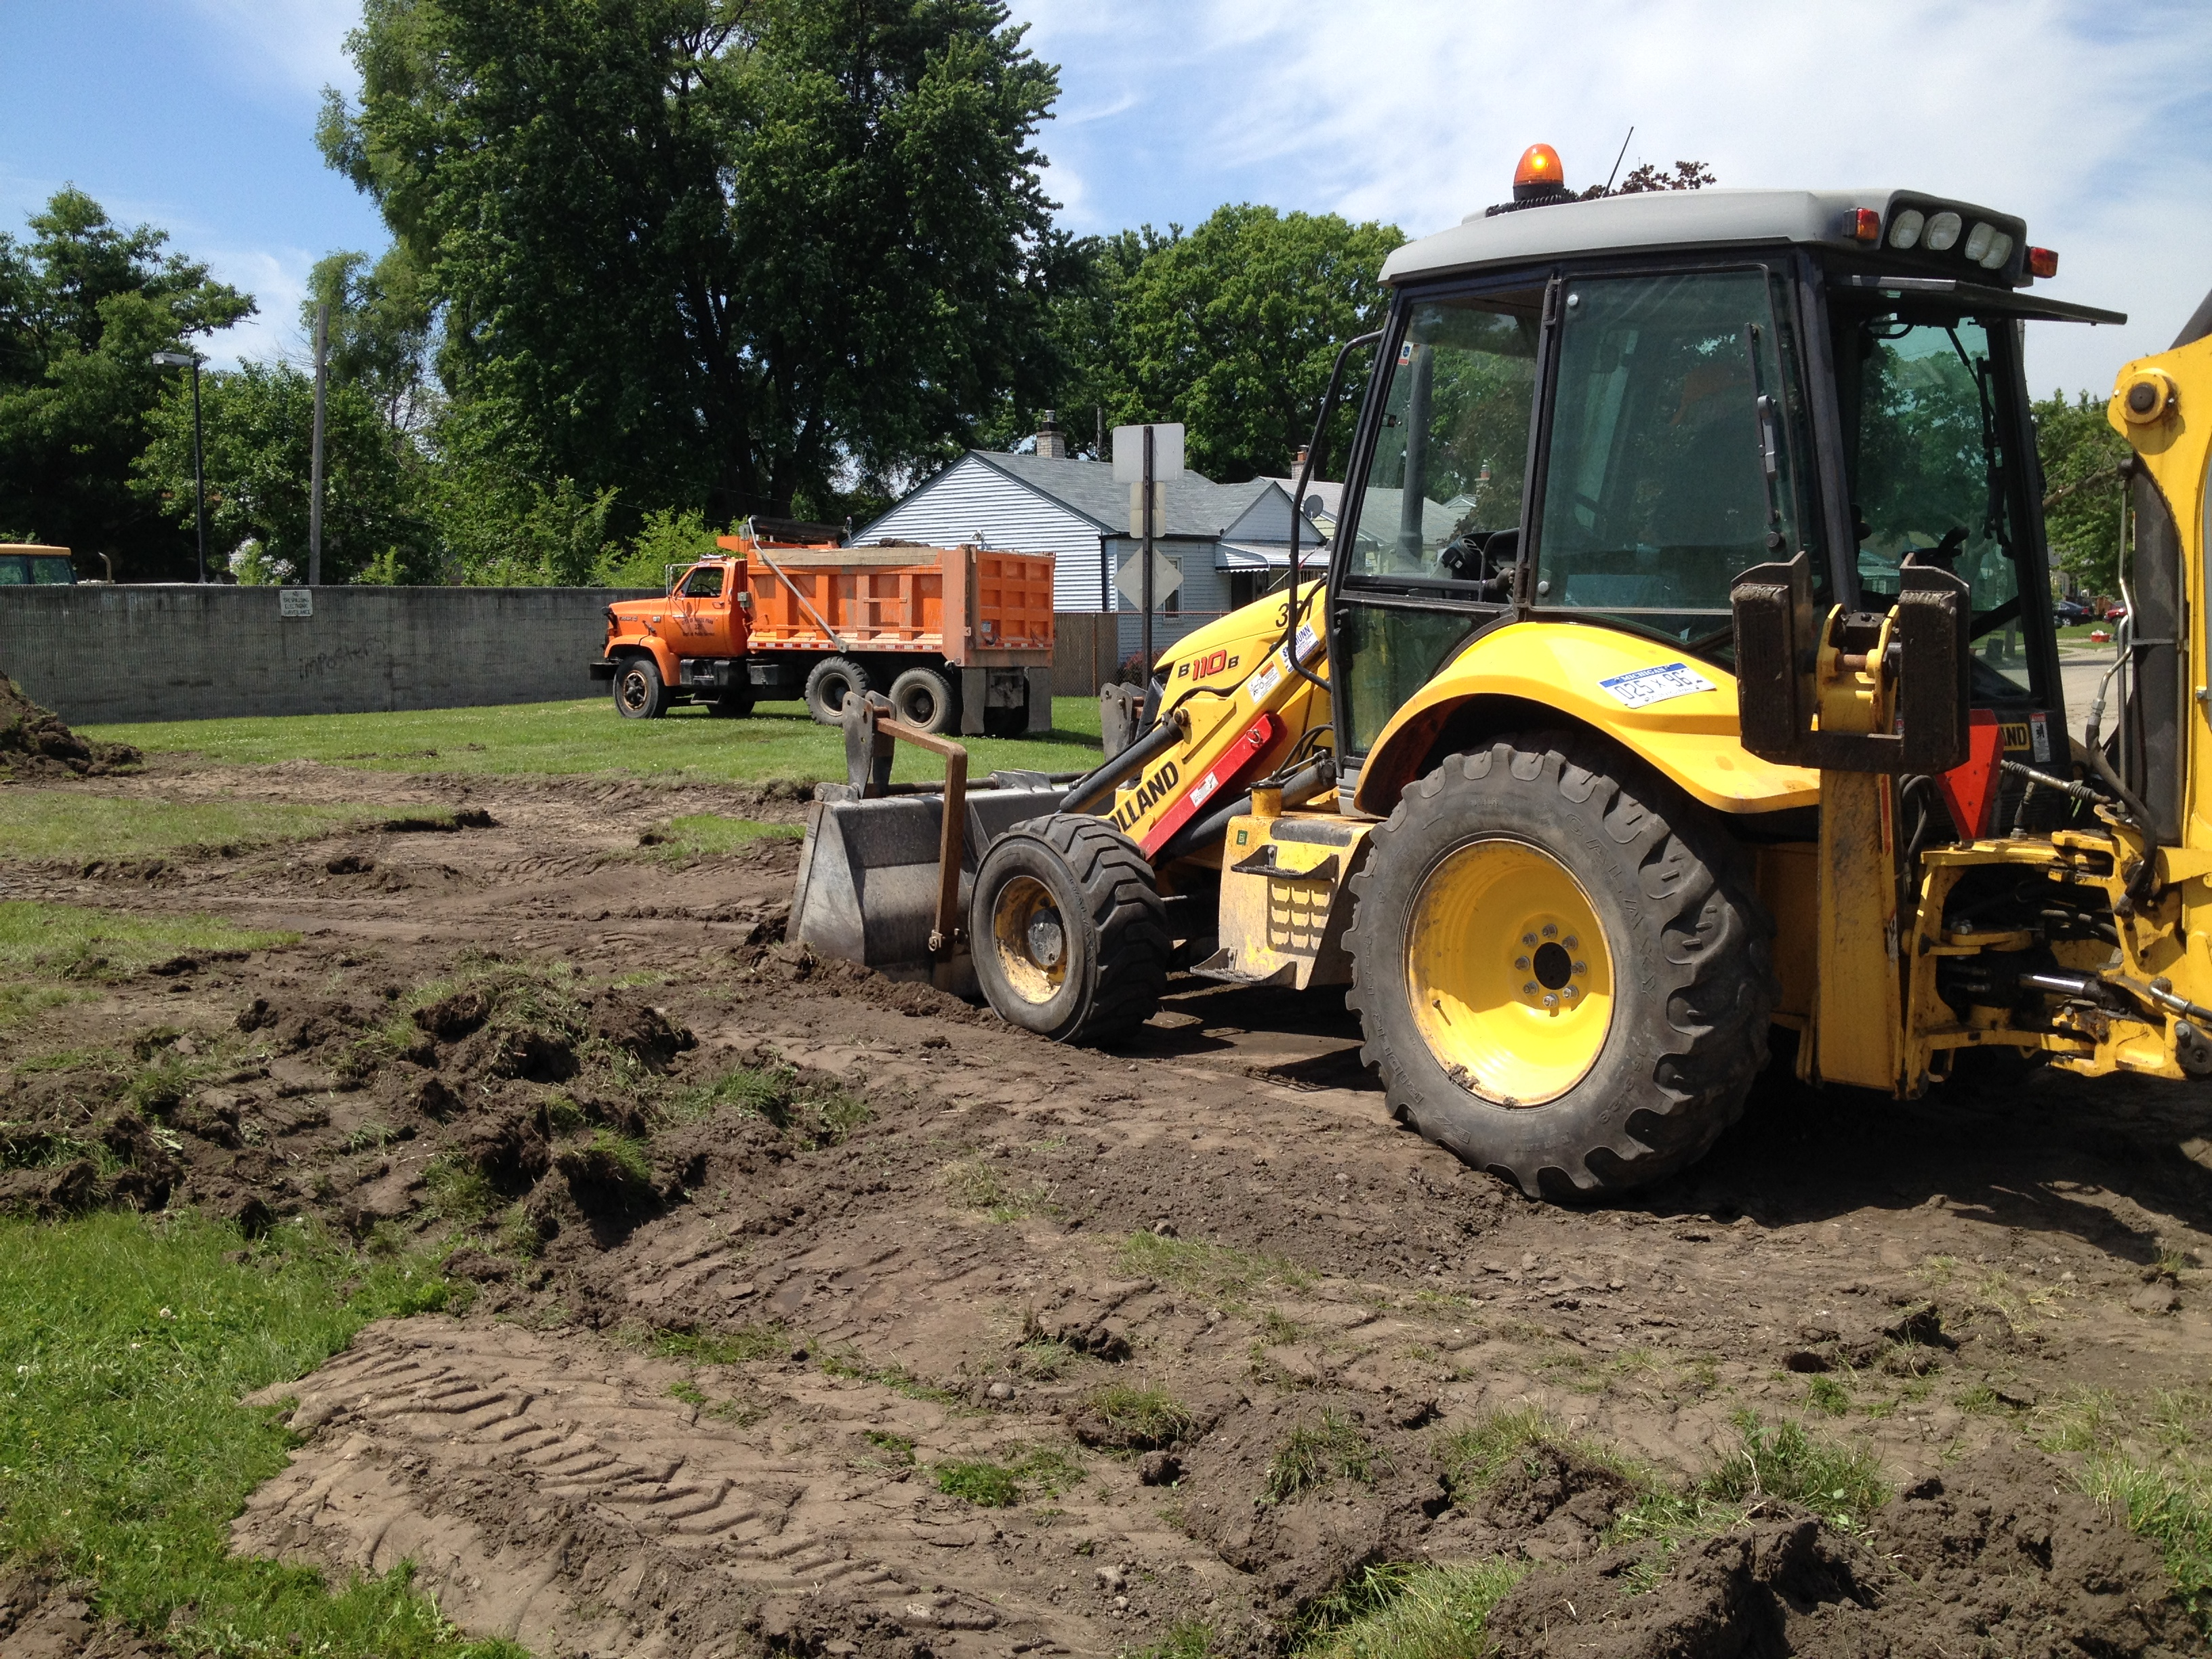 Tearing up grass for Parking Lot!